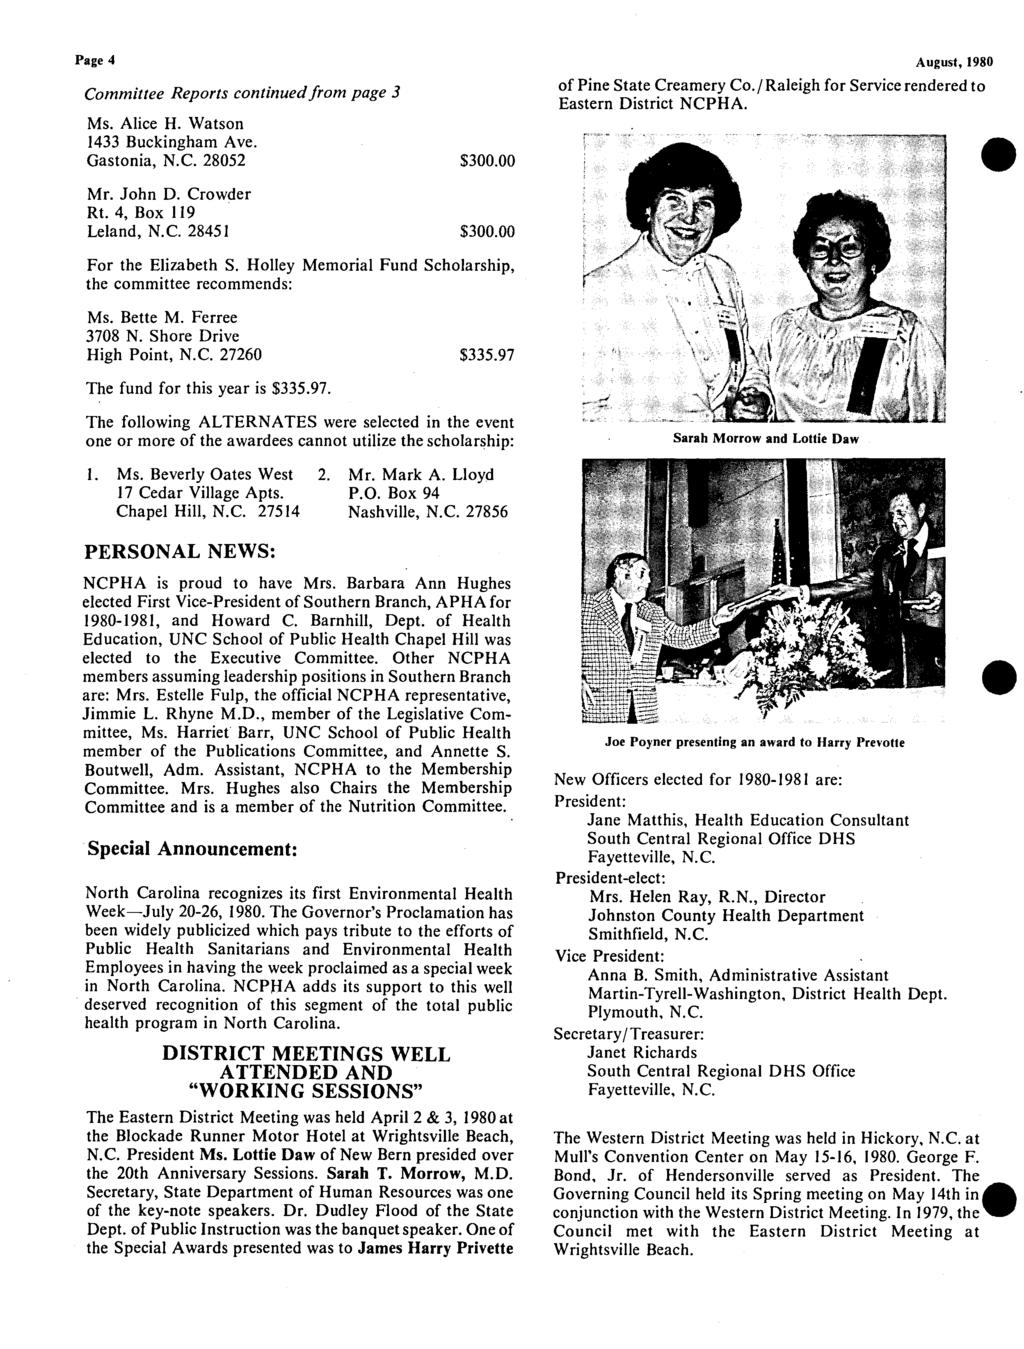 Page 4 Committee Reports continuedfrom page 3 Ms. Alice H. Watson 1433 Buckingham Ave. Gastonia, N. C. 28052 $ 300. 00 August, 1980 of Pine State Creamery Co.